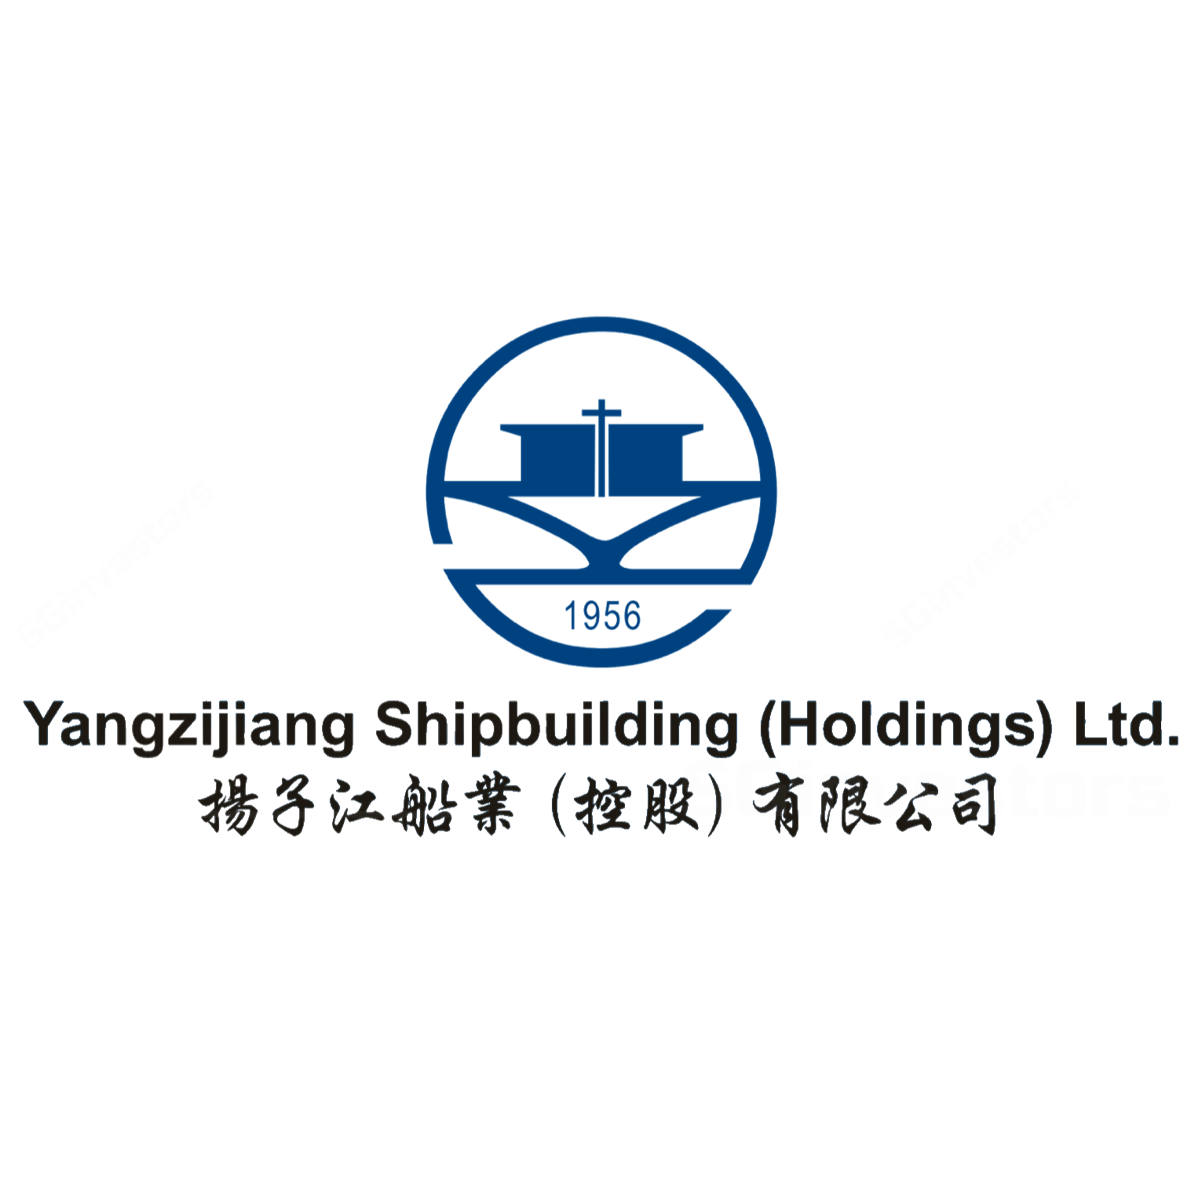 Yangzijiang Shipbuilding (YZJSGD SP) - DBS Vickers 2017-09-04: Raising Equity For Future M&As